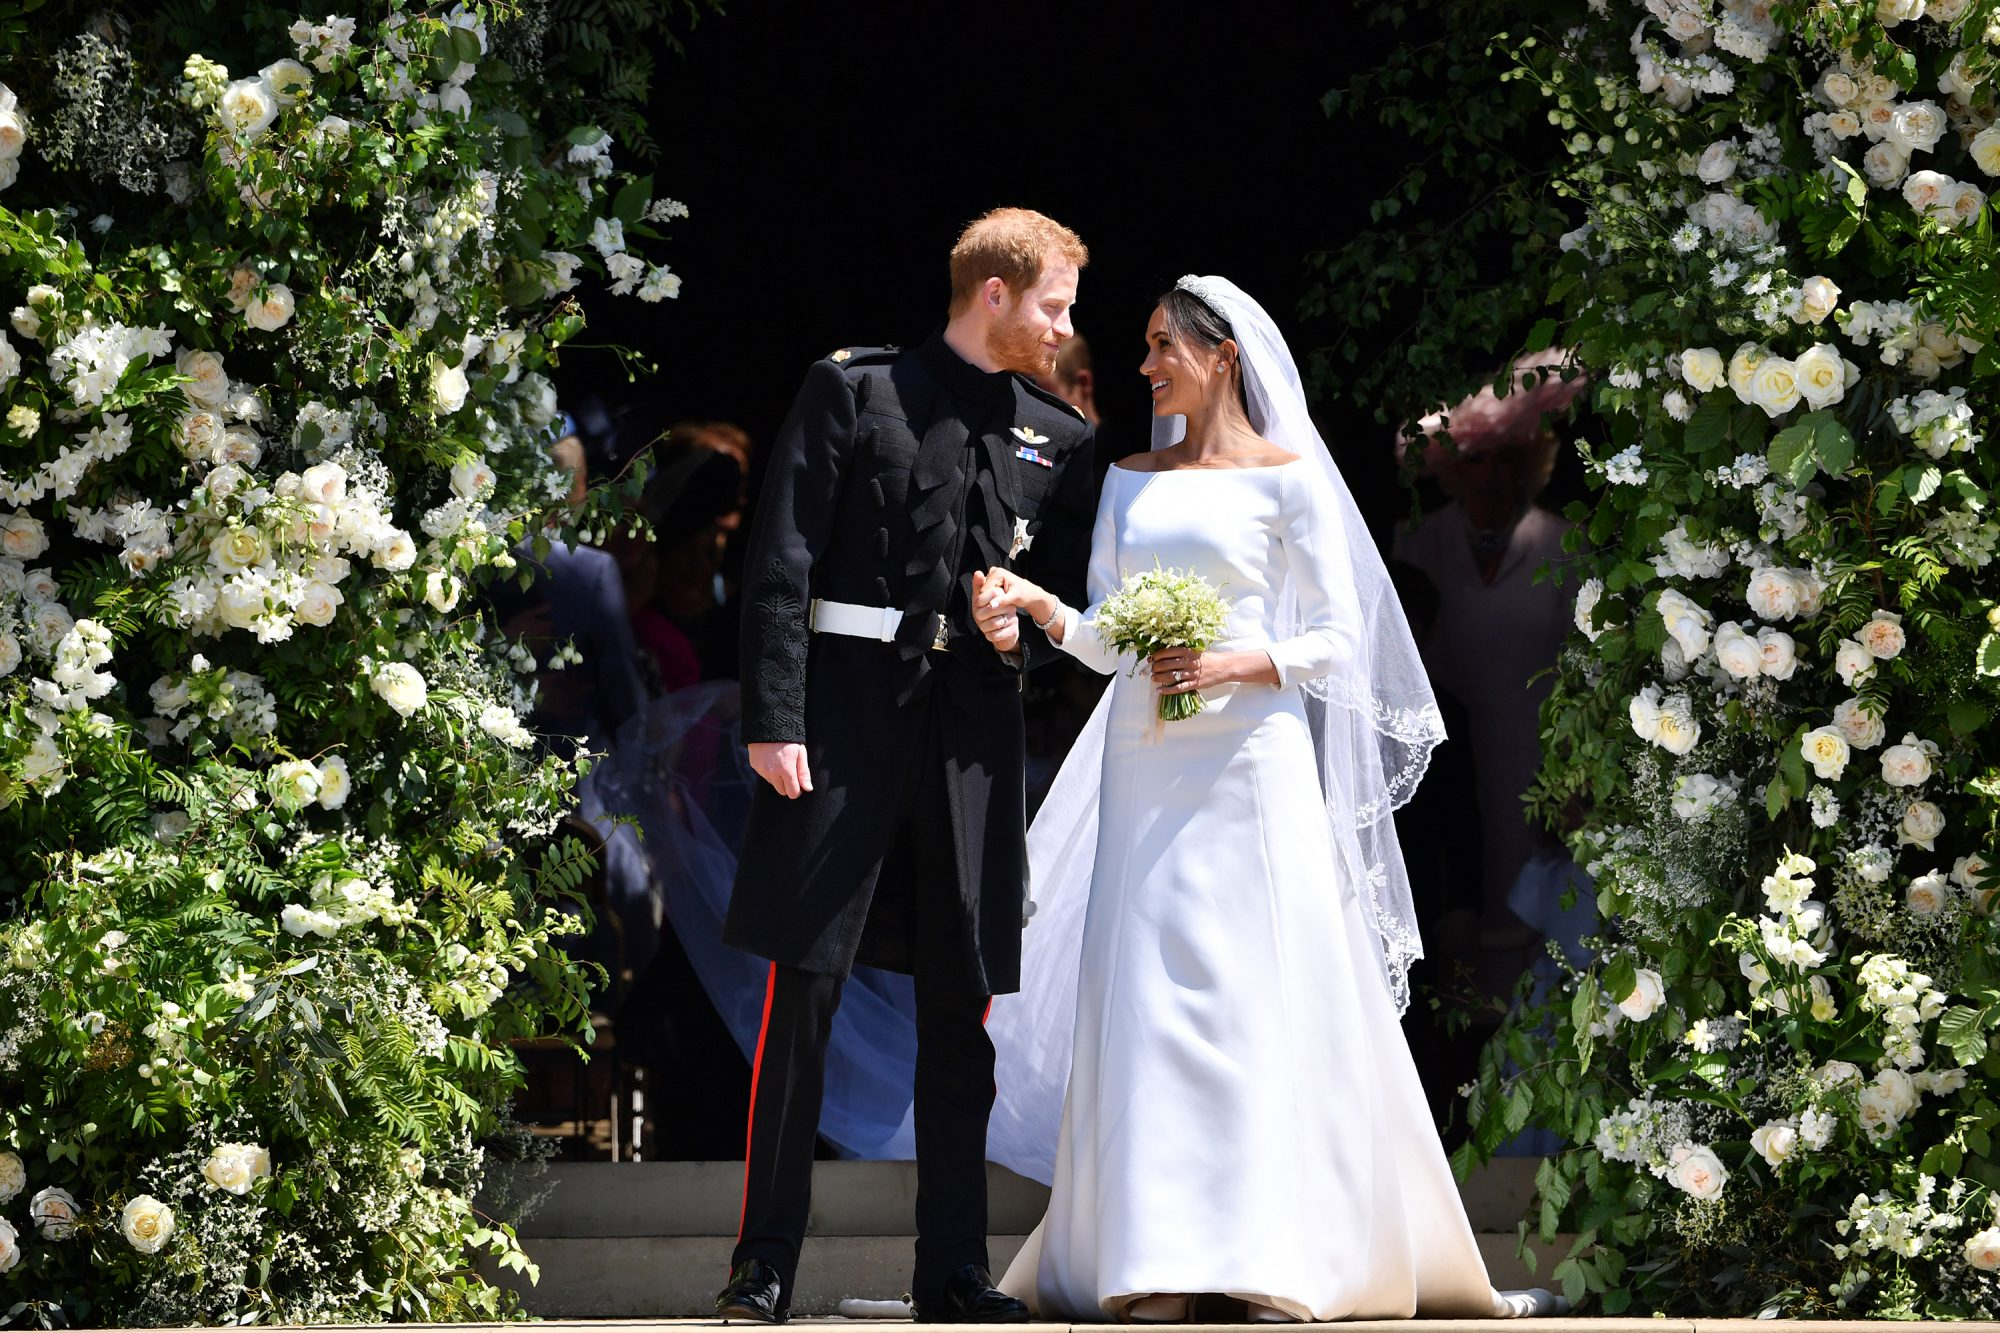 Meghan Markle and Prince Harry Royal Wedding 2018